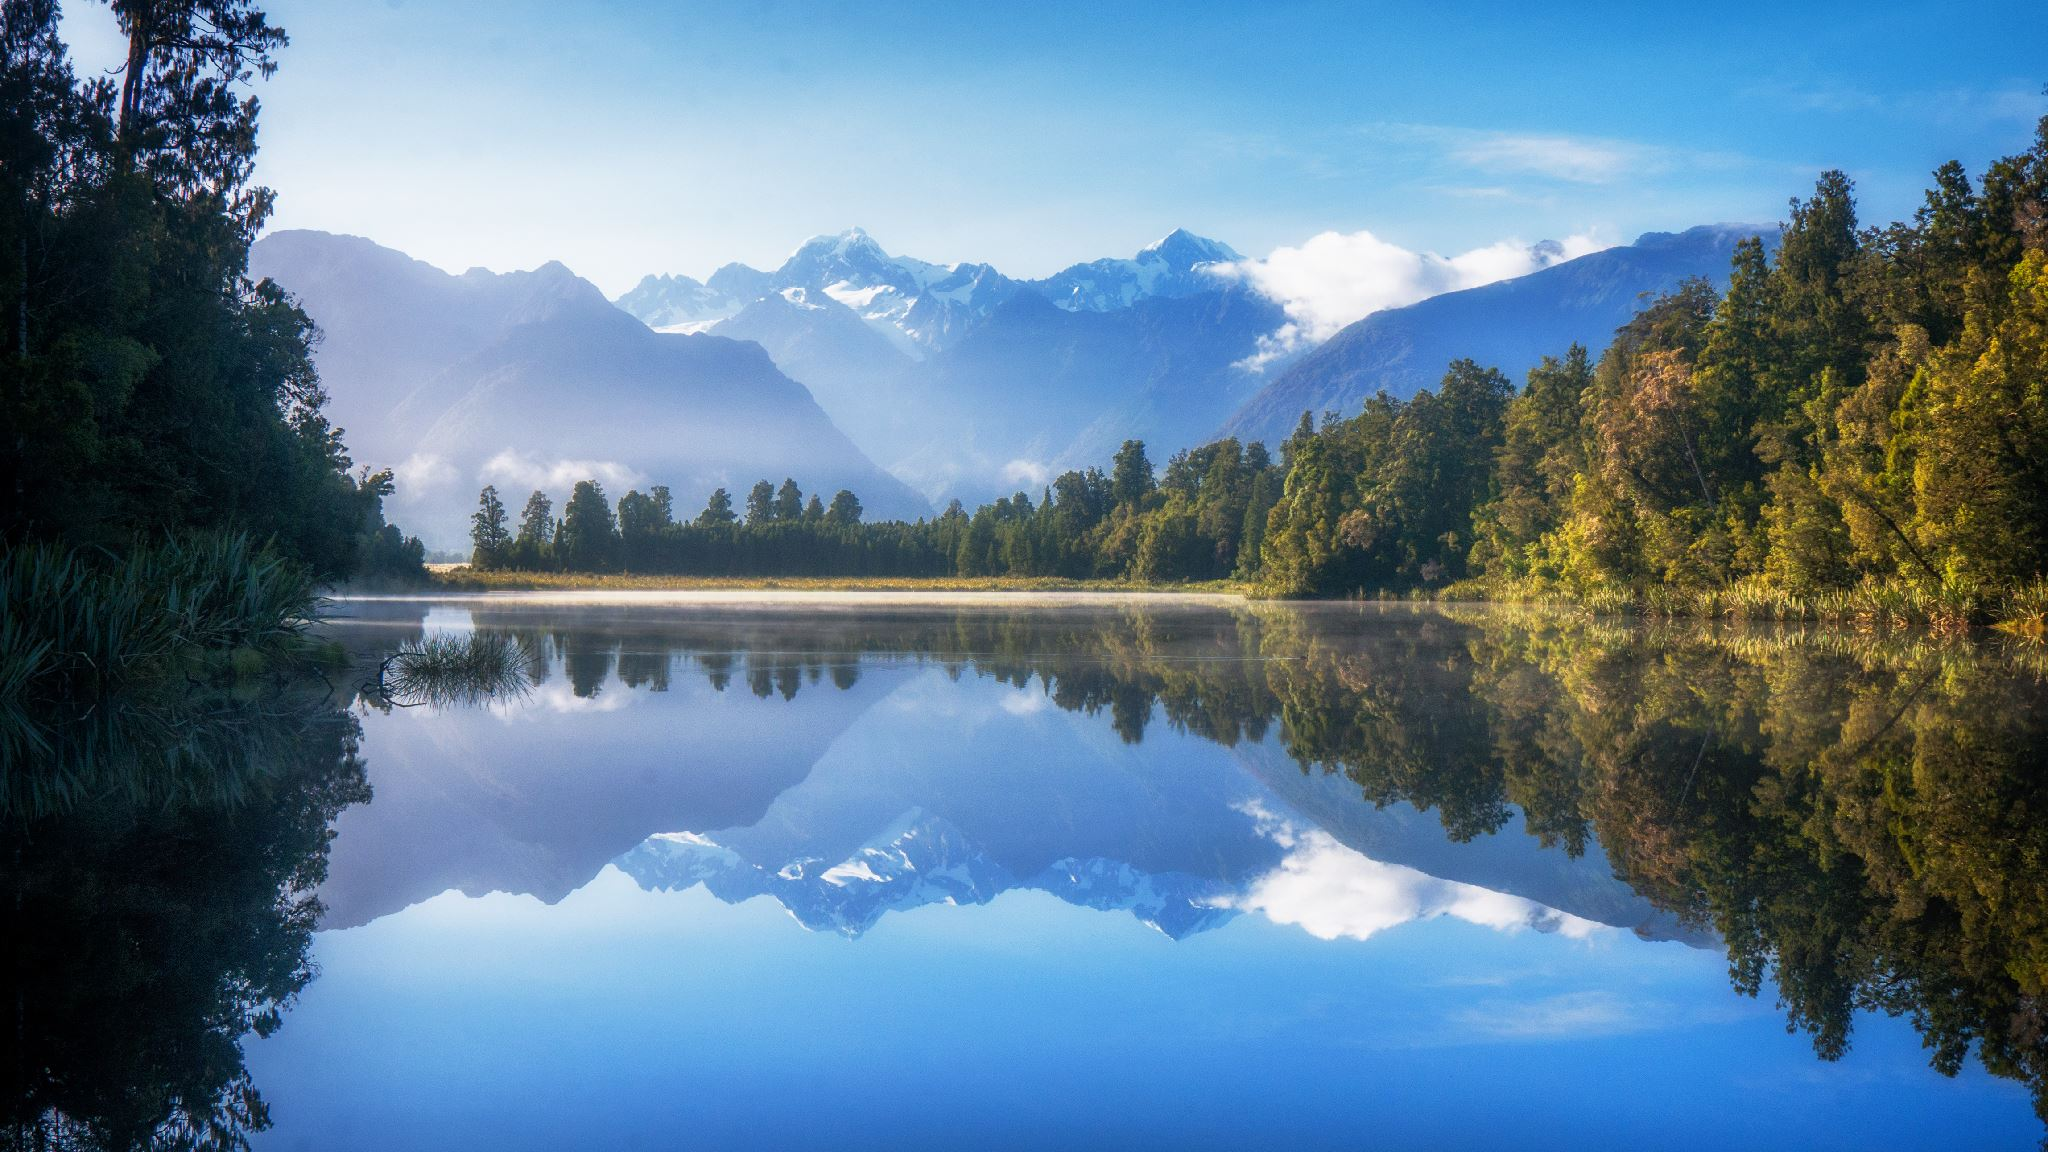 Lake Matheson February 2021 by Barry Teutenberg